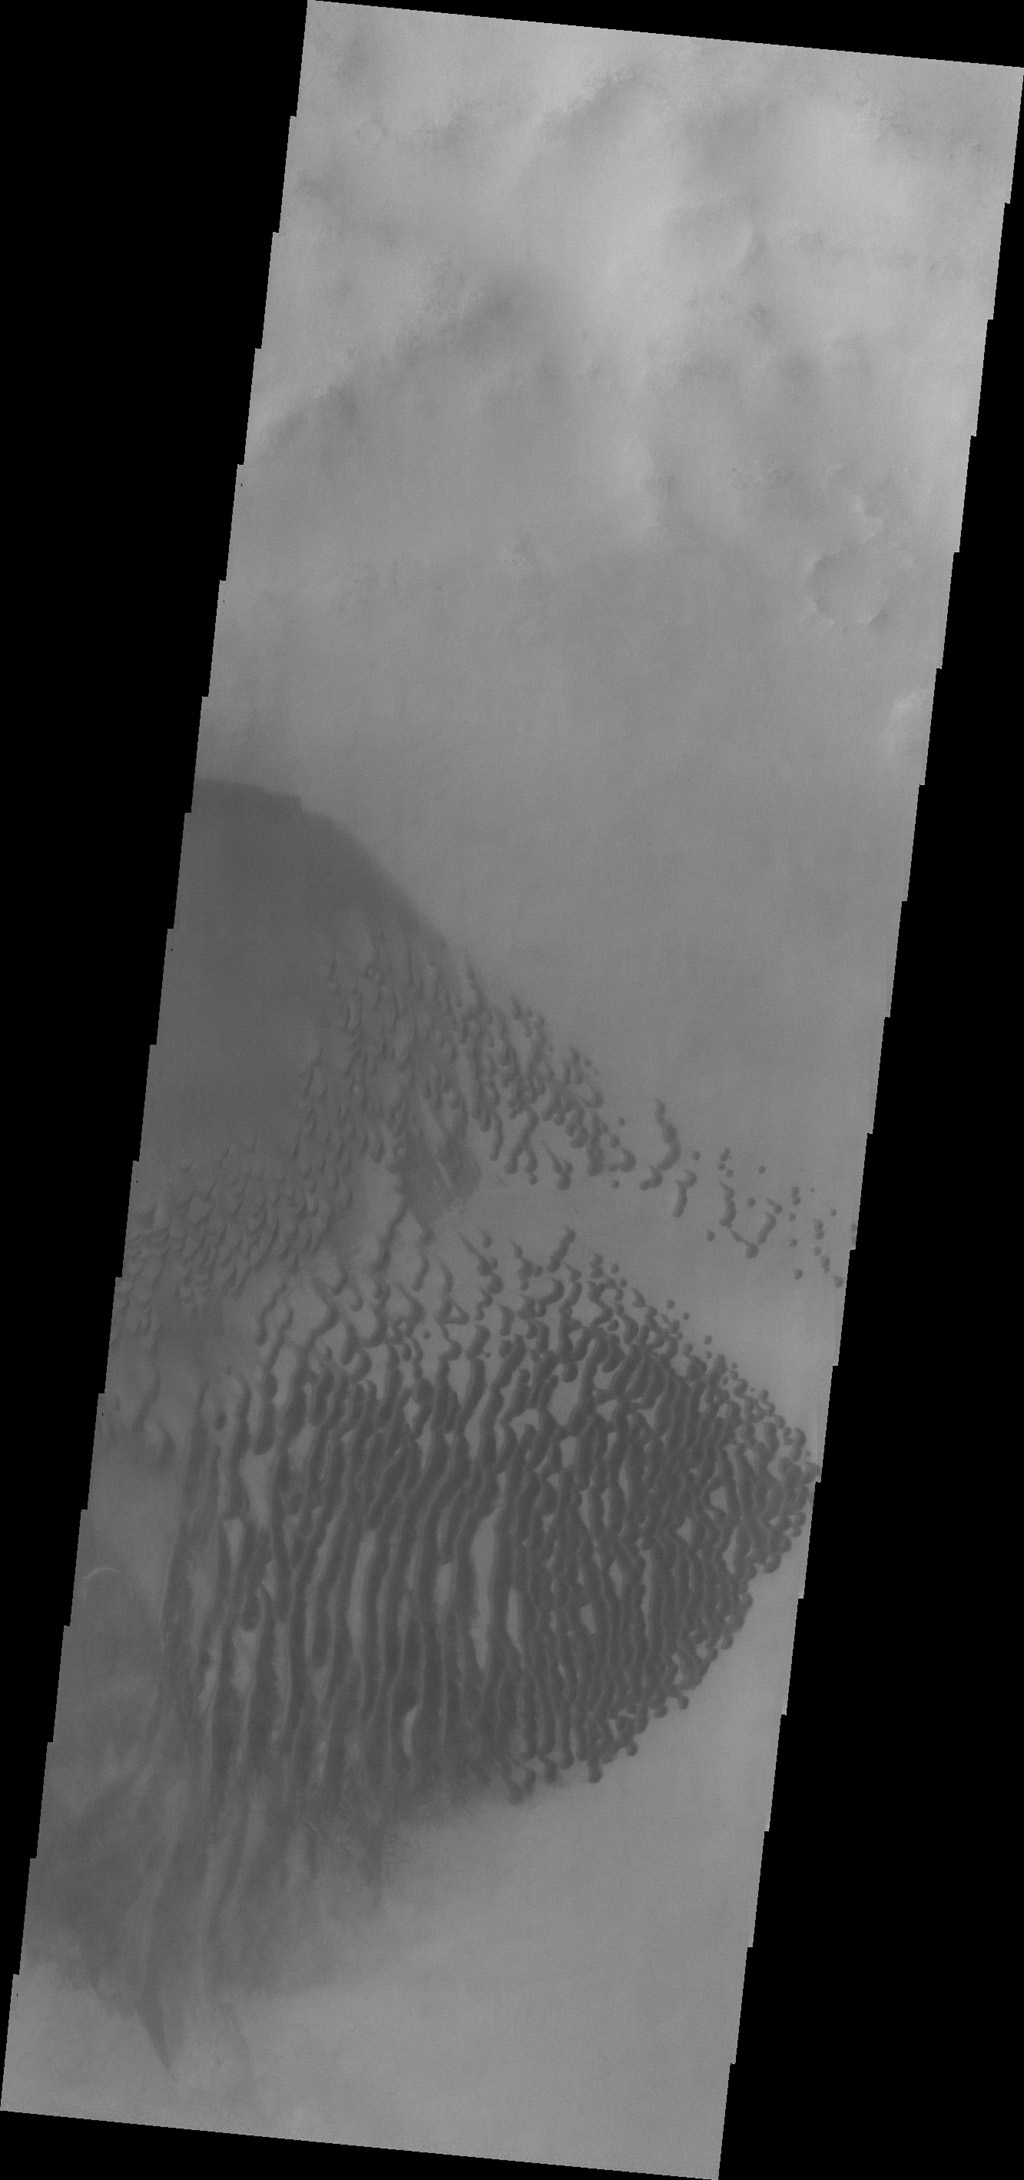 Dunes located on the floor of Lamont Crater are seen in this image captured by NASA's Mars Odyssey.